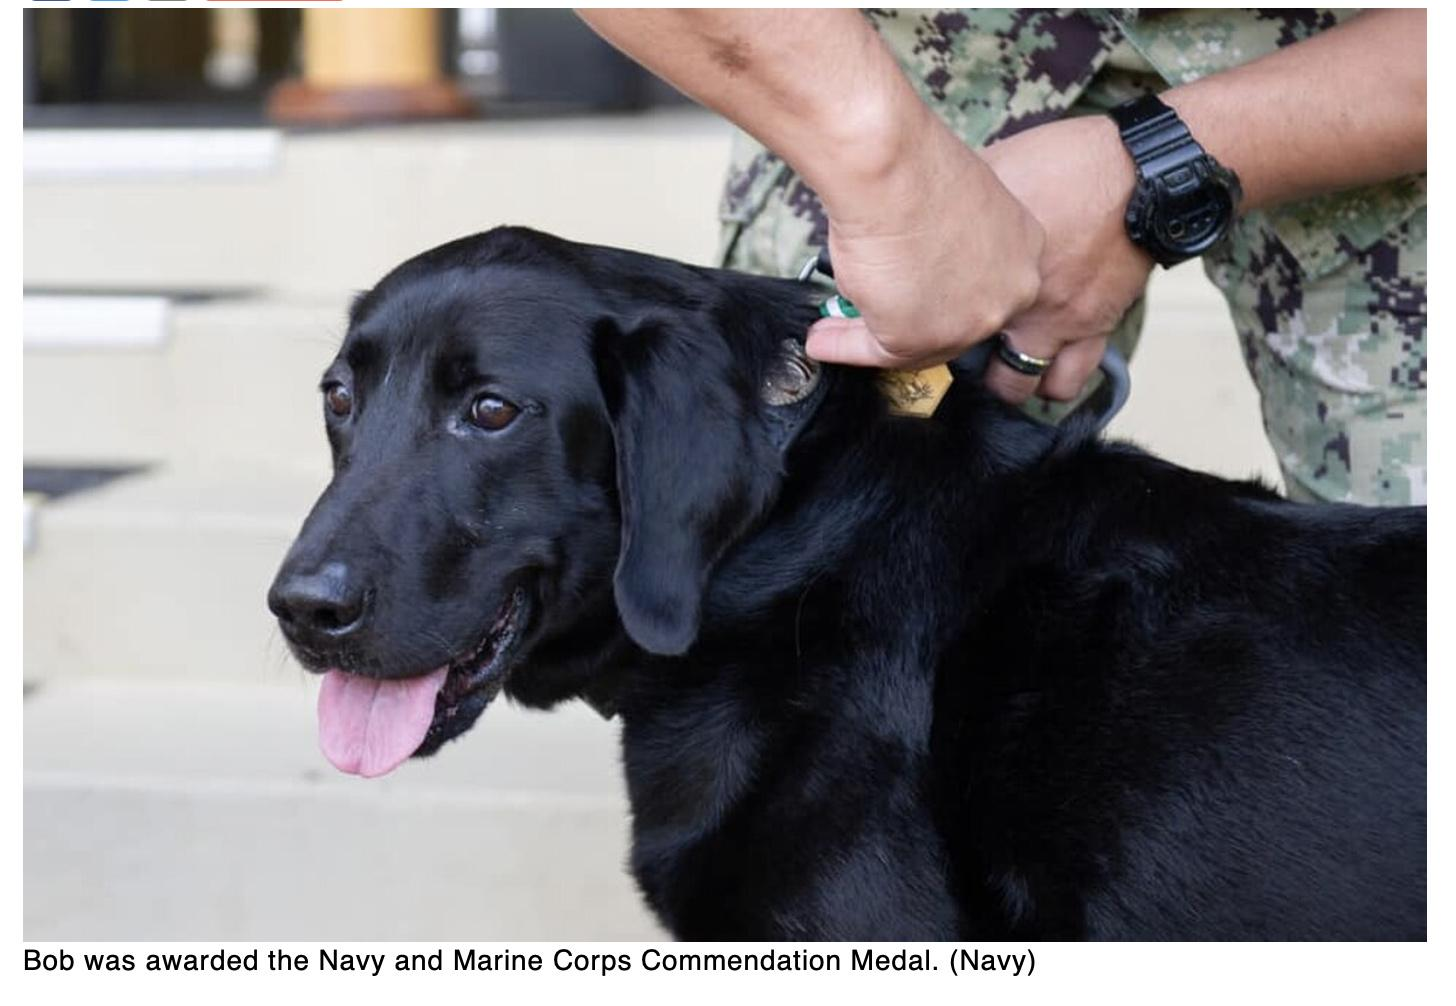 Sailors send off Bob — a very good military working dog — after a stellar career